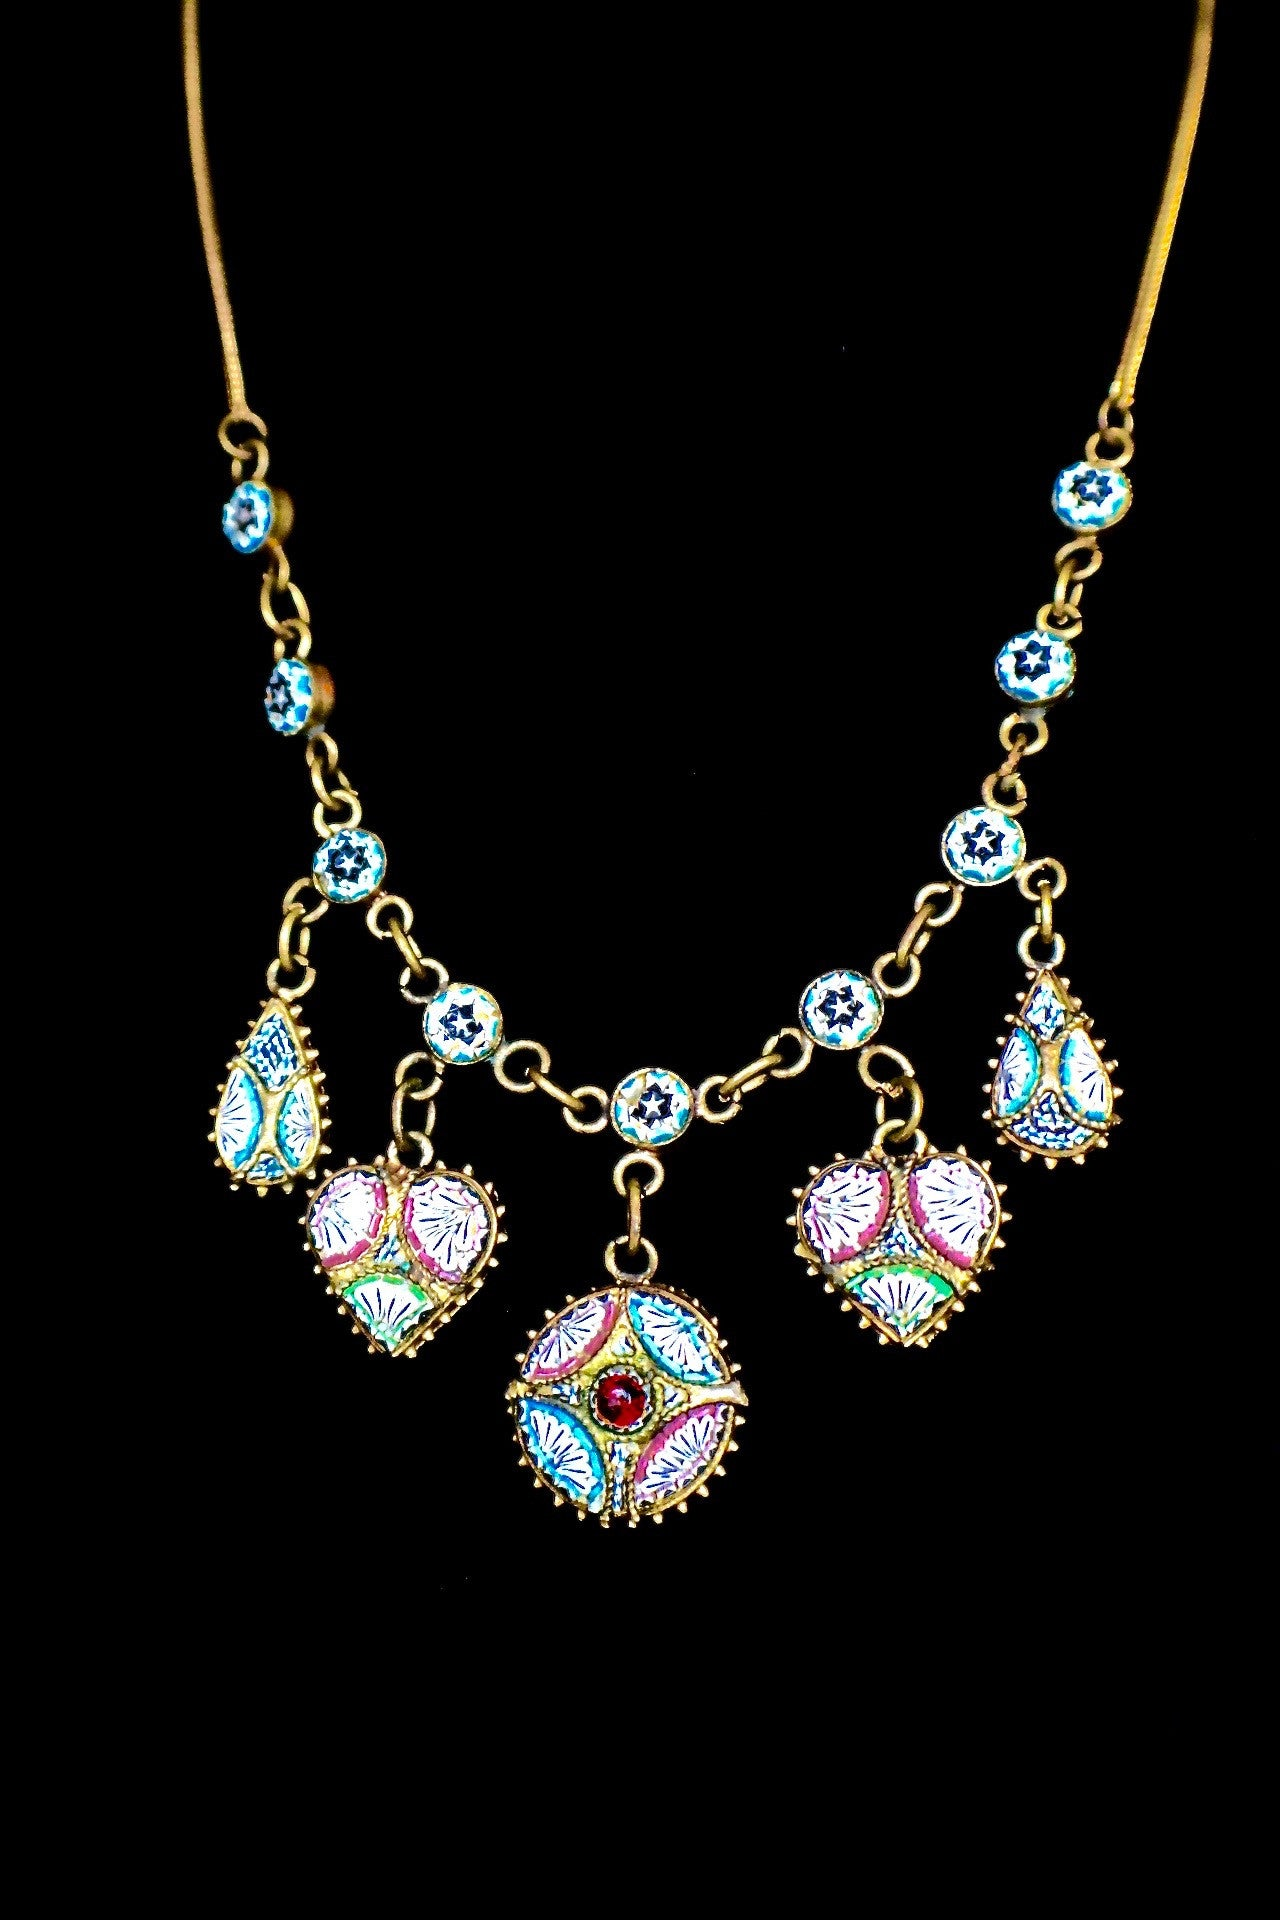 jewel sdetail inc gold vintage signed crystal necklace jeweled pendant rainbow jewelry art